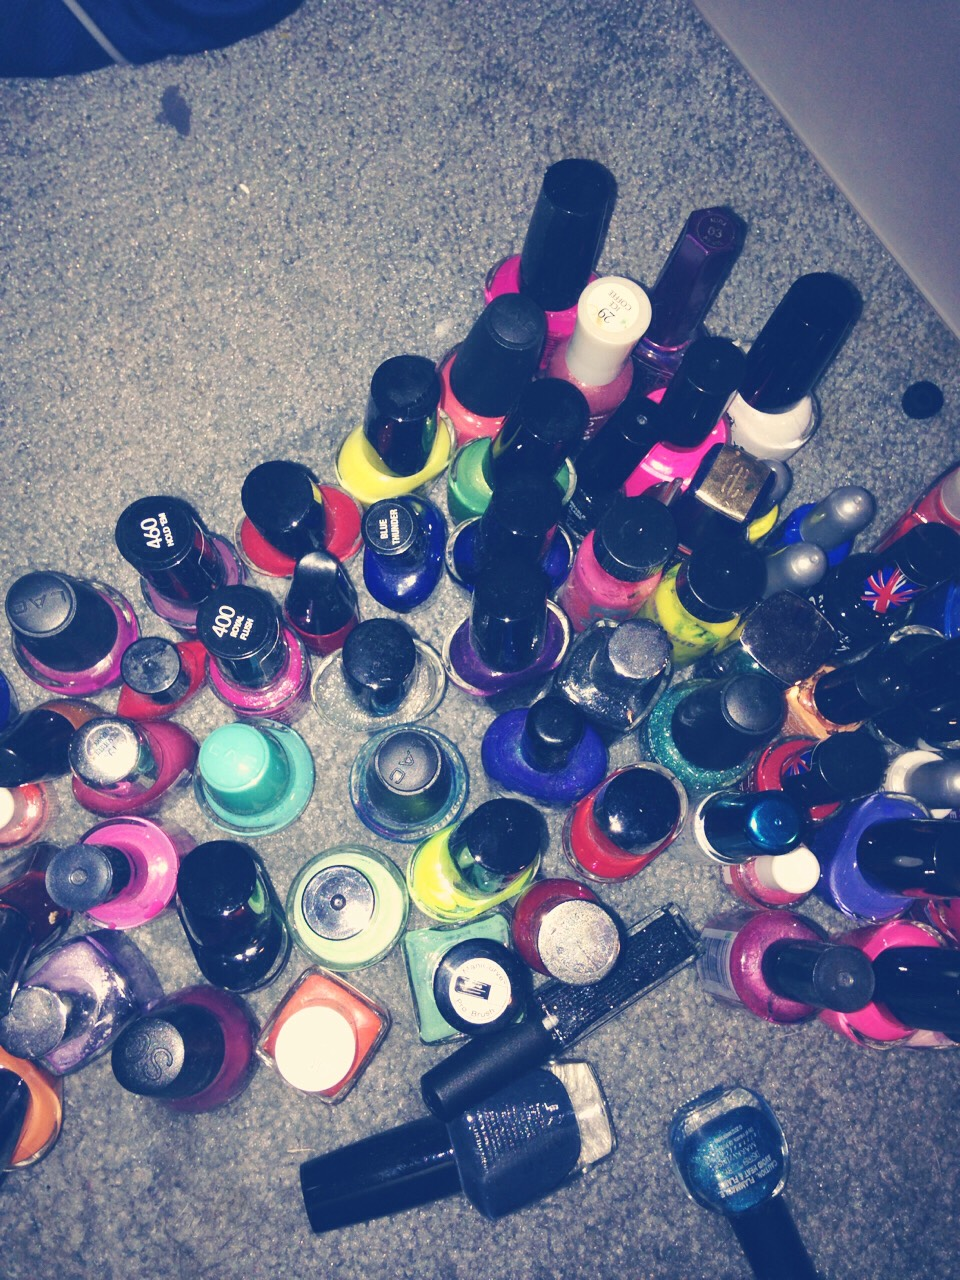 If you're anything like me you have a bunch of nail polishes and you have to dig them all out to see the color each time you go to get a new one. I will show you how to make it so you can see the color avoiding all the hassle